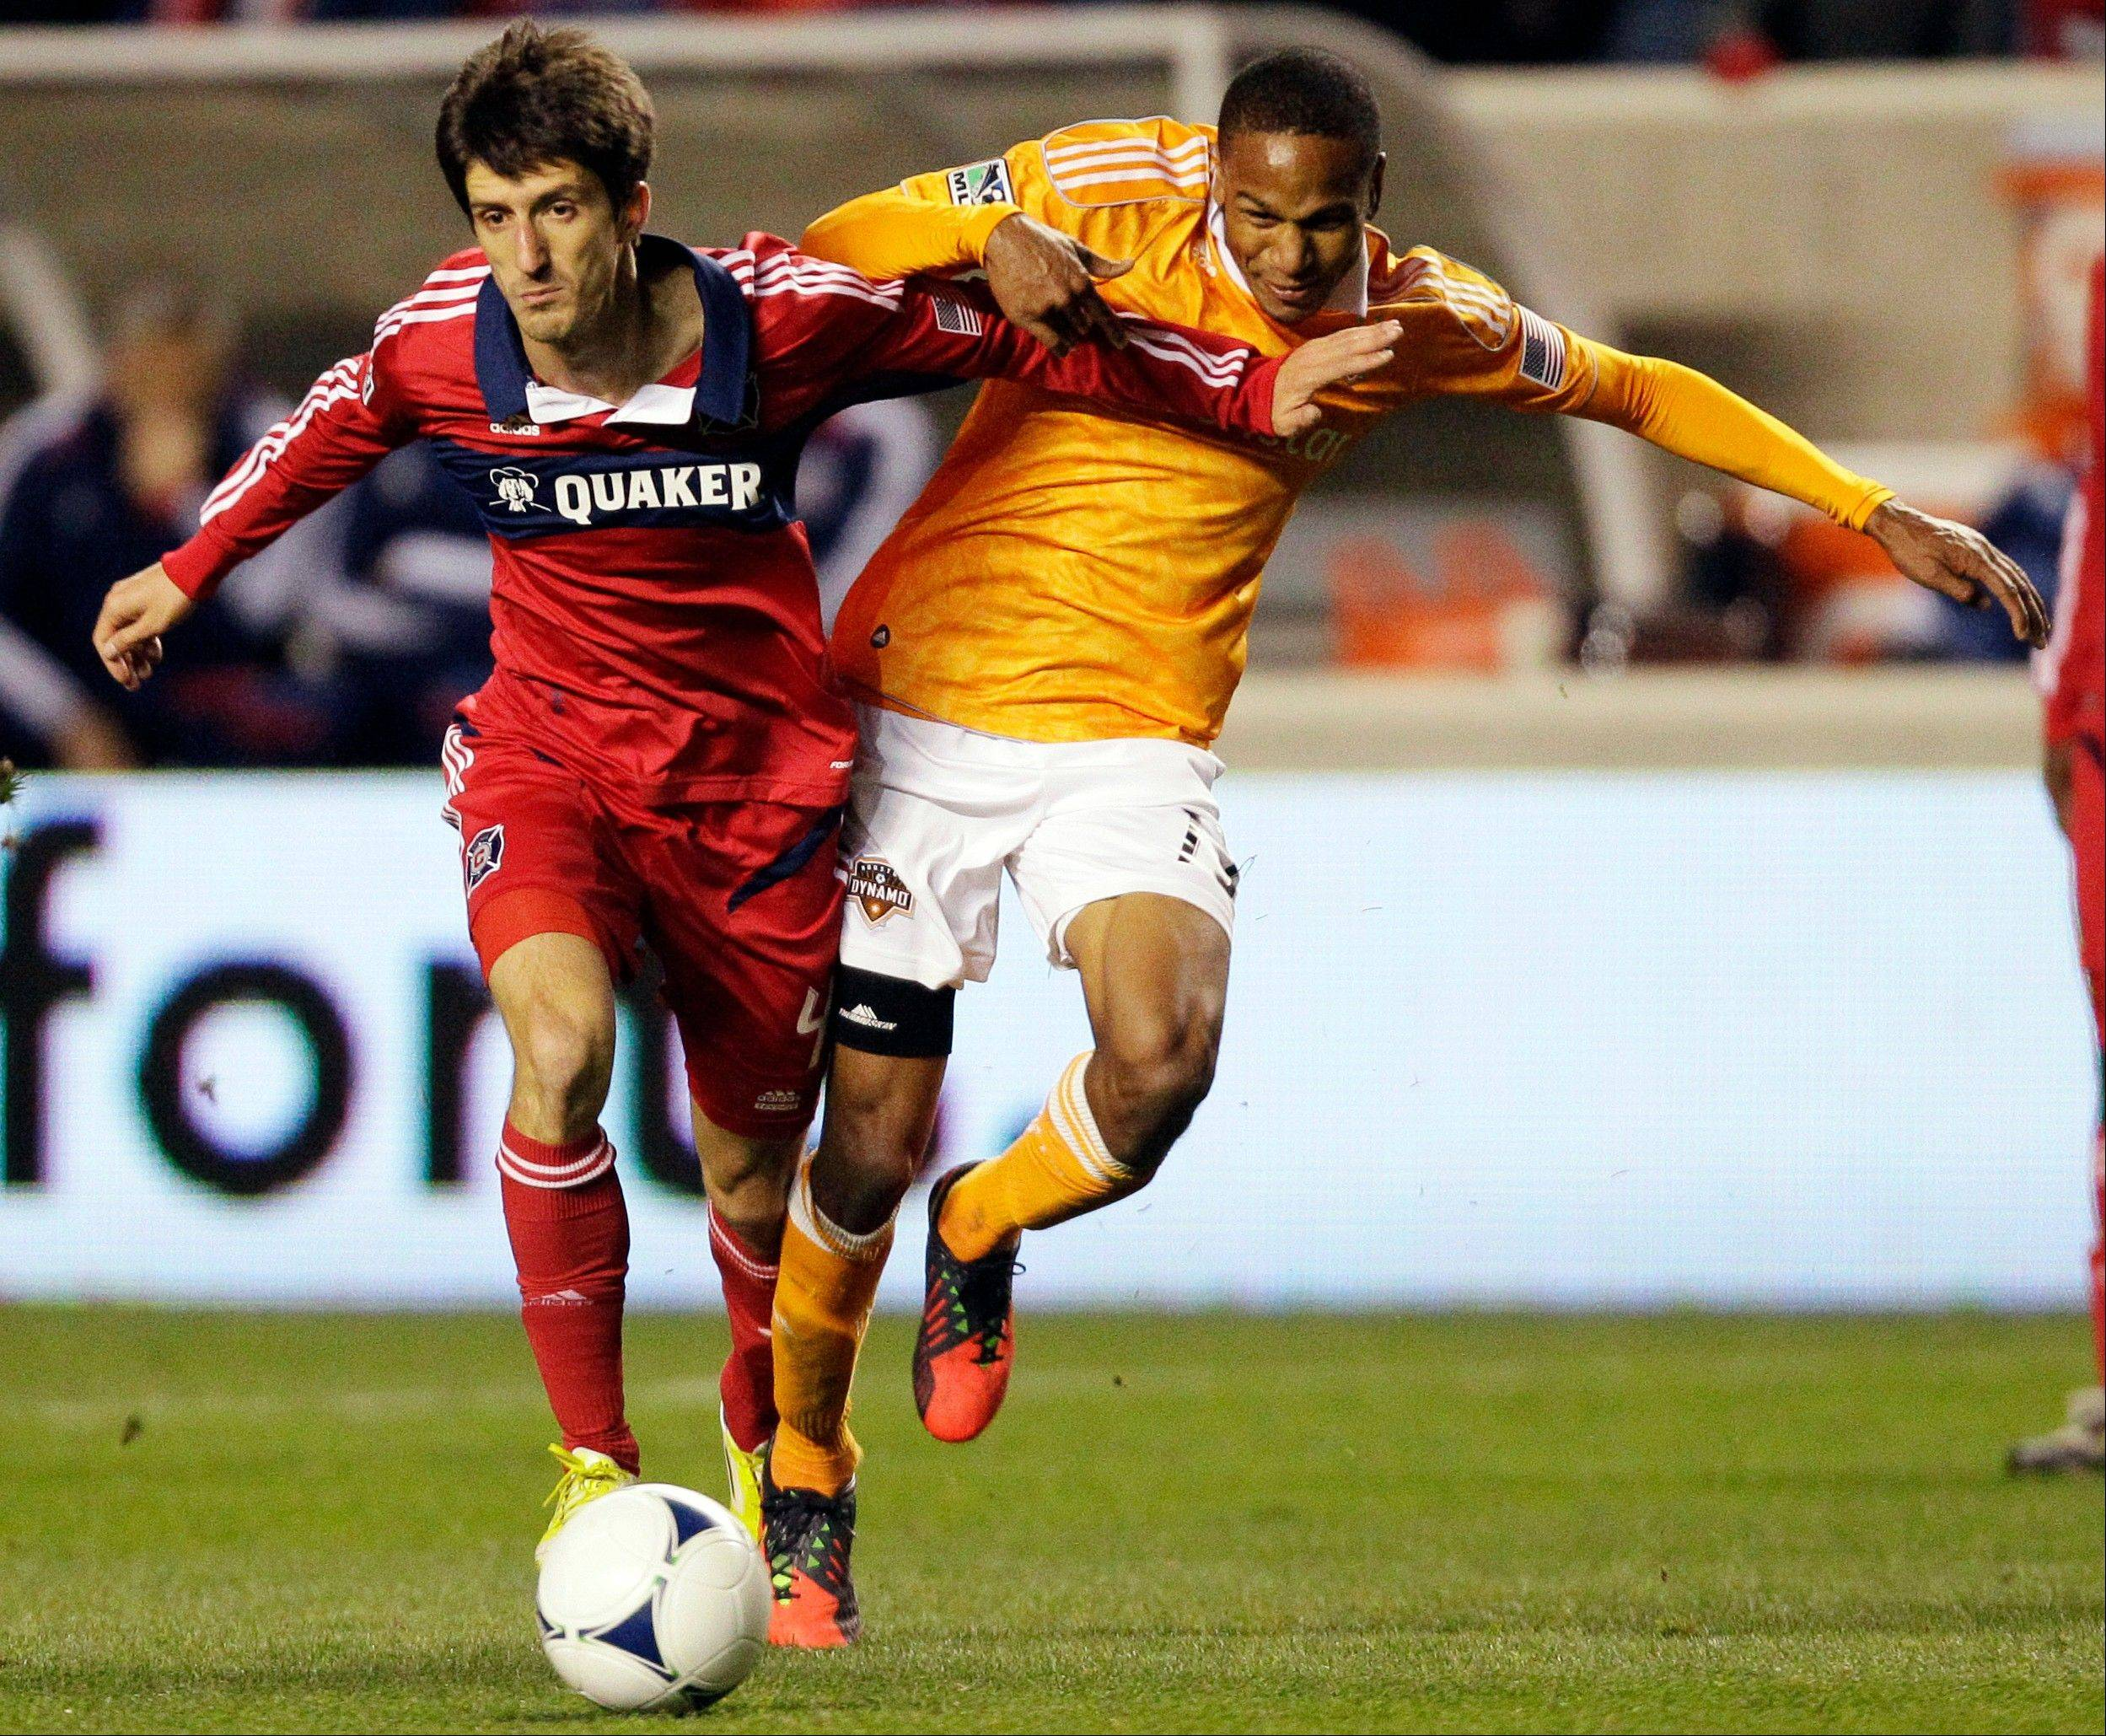 Fire midfielder Alvaro Fernandez, left, and Houston Dynamo midfielder Ricardo Clark battle for the ball during the first half Wednesday night.